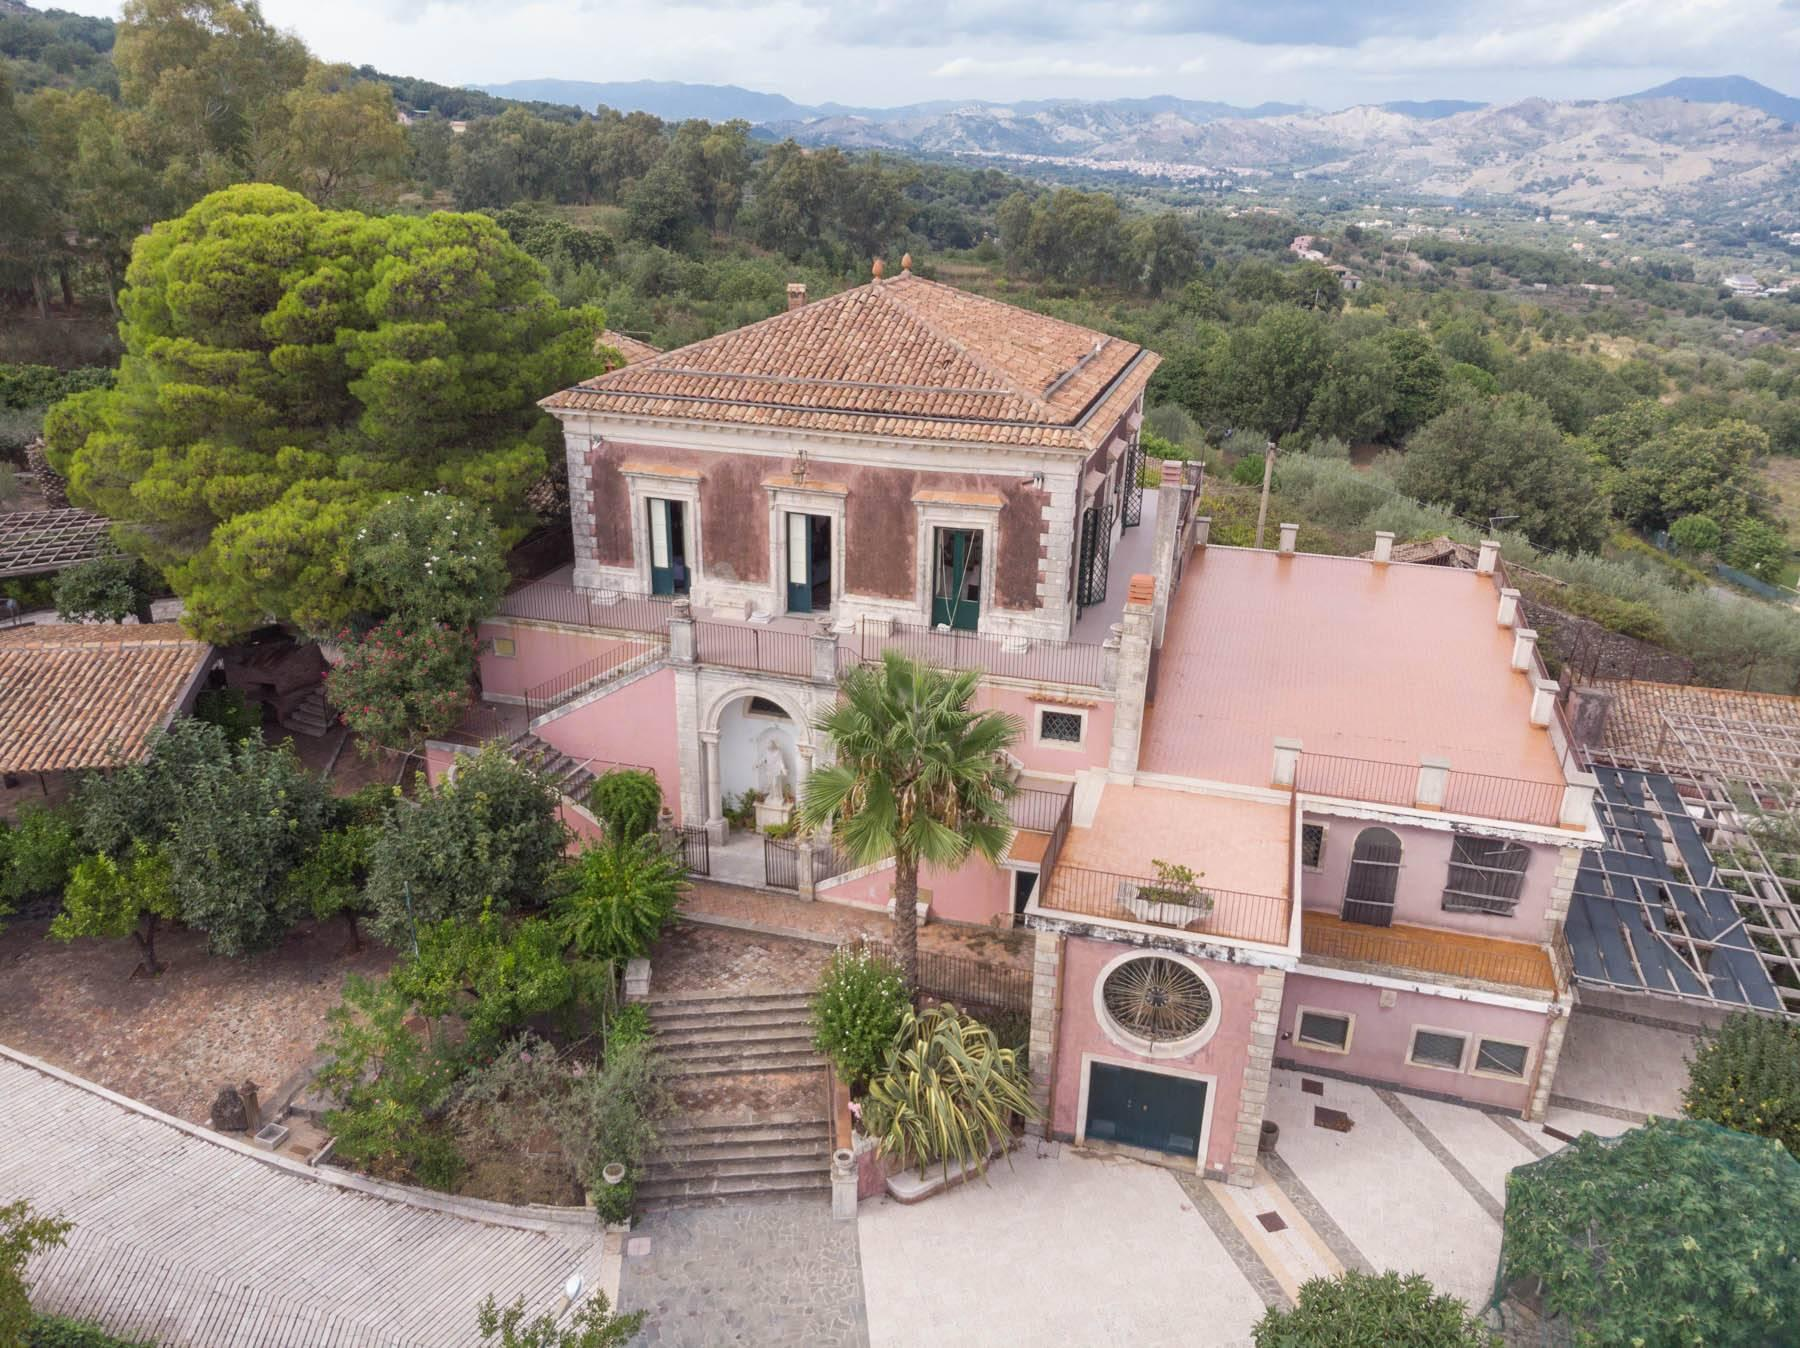 Wonderful Villa on the slopes of Mount Etna - 1